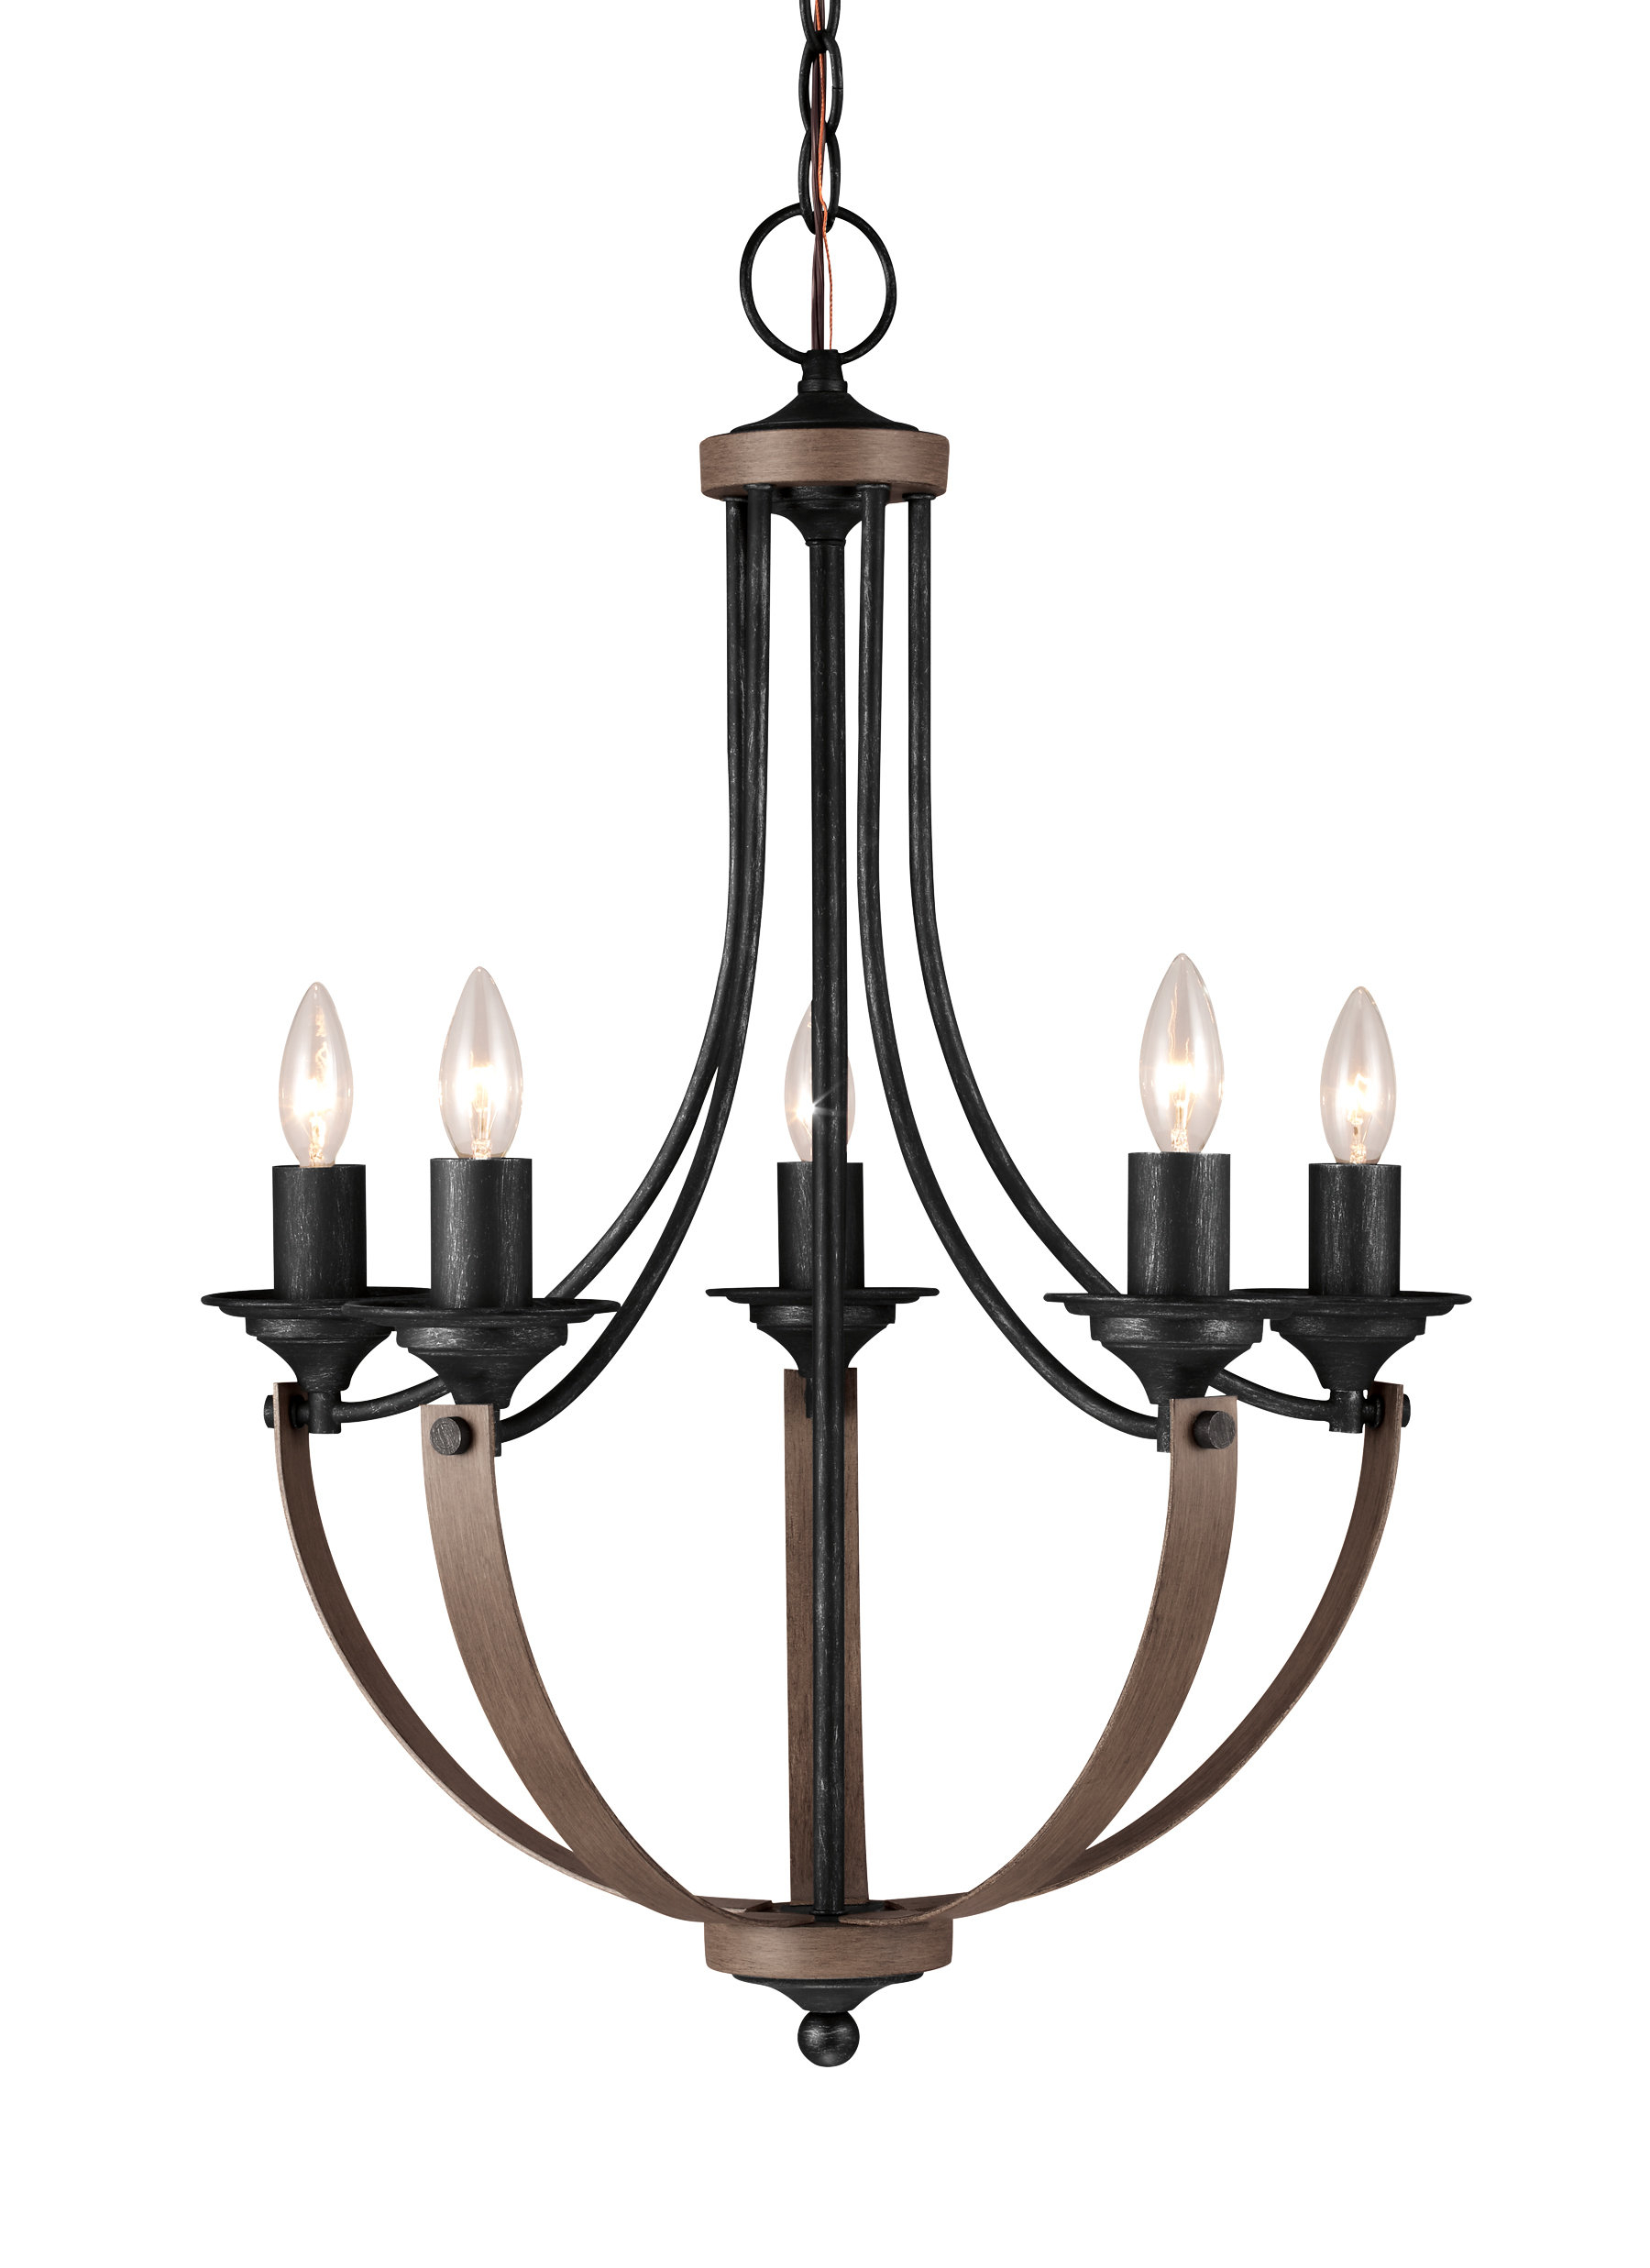 Newest Kenna 5 Light Empire Chandelier For Camilla 9 Light Candle Style Chandeliers (View 15 of 20)